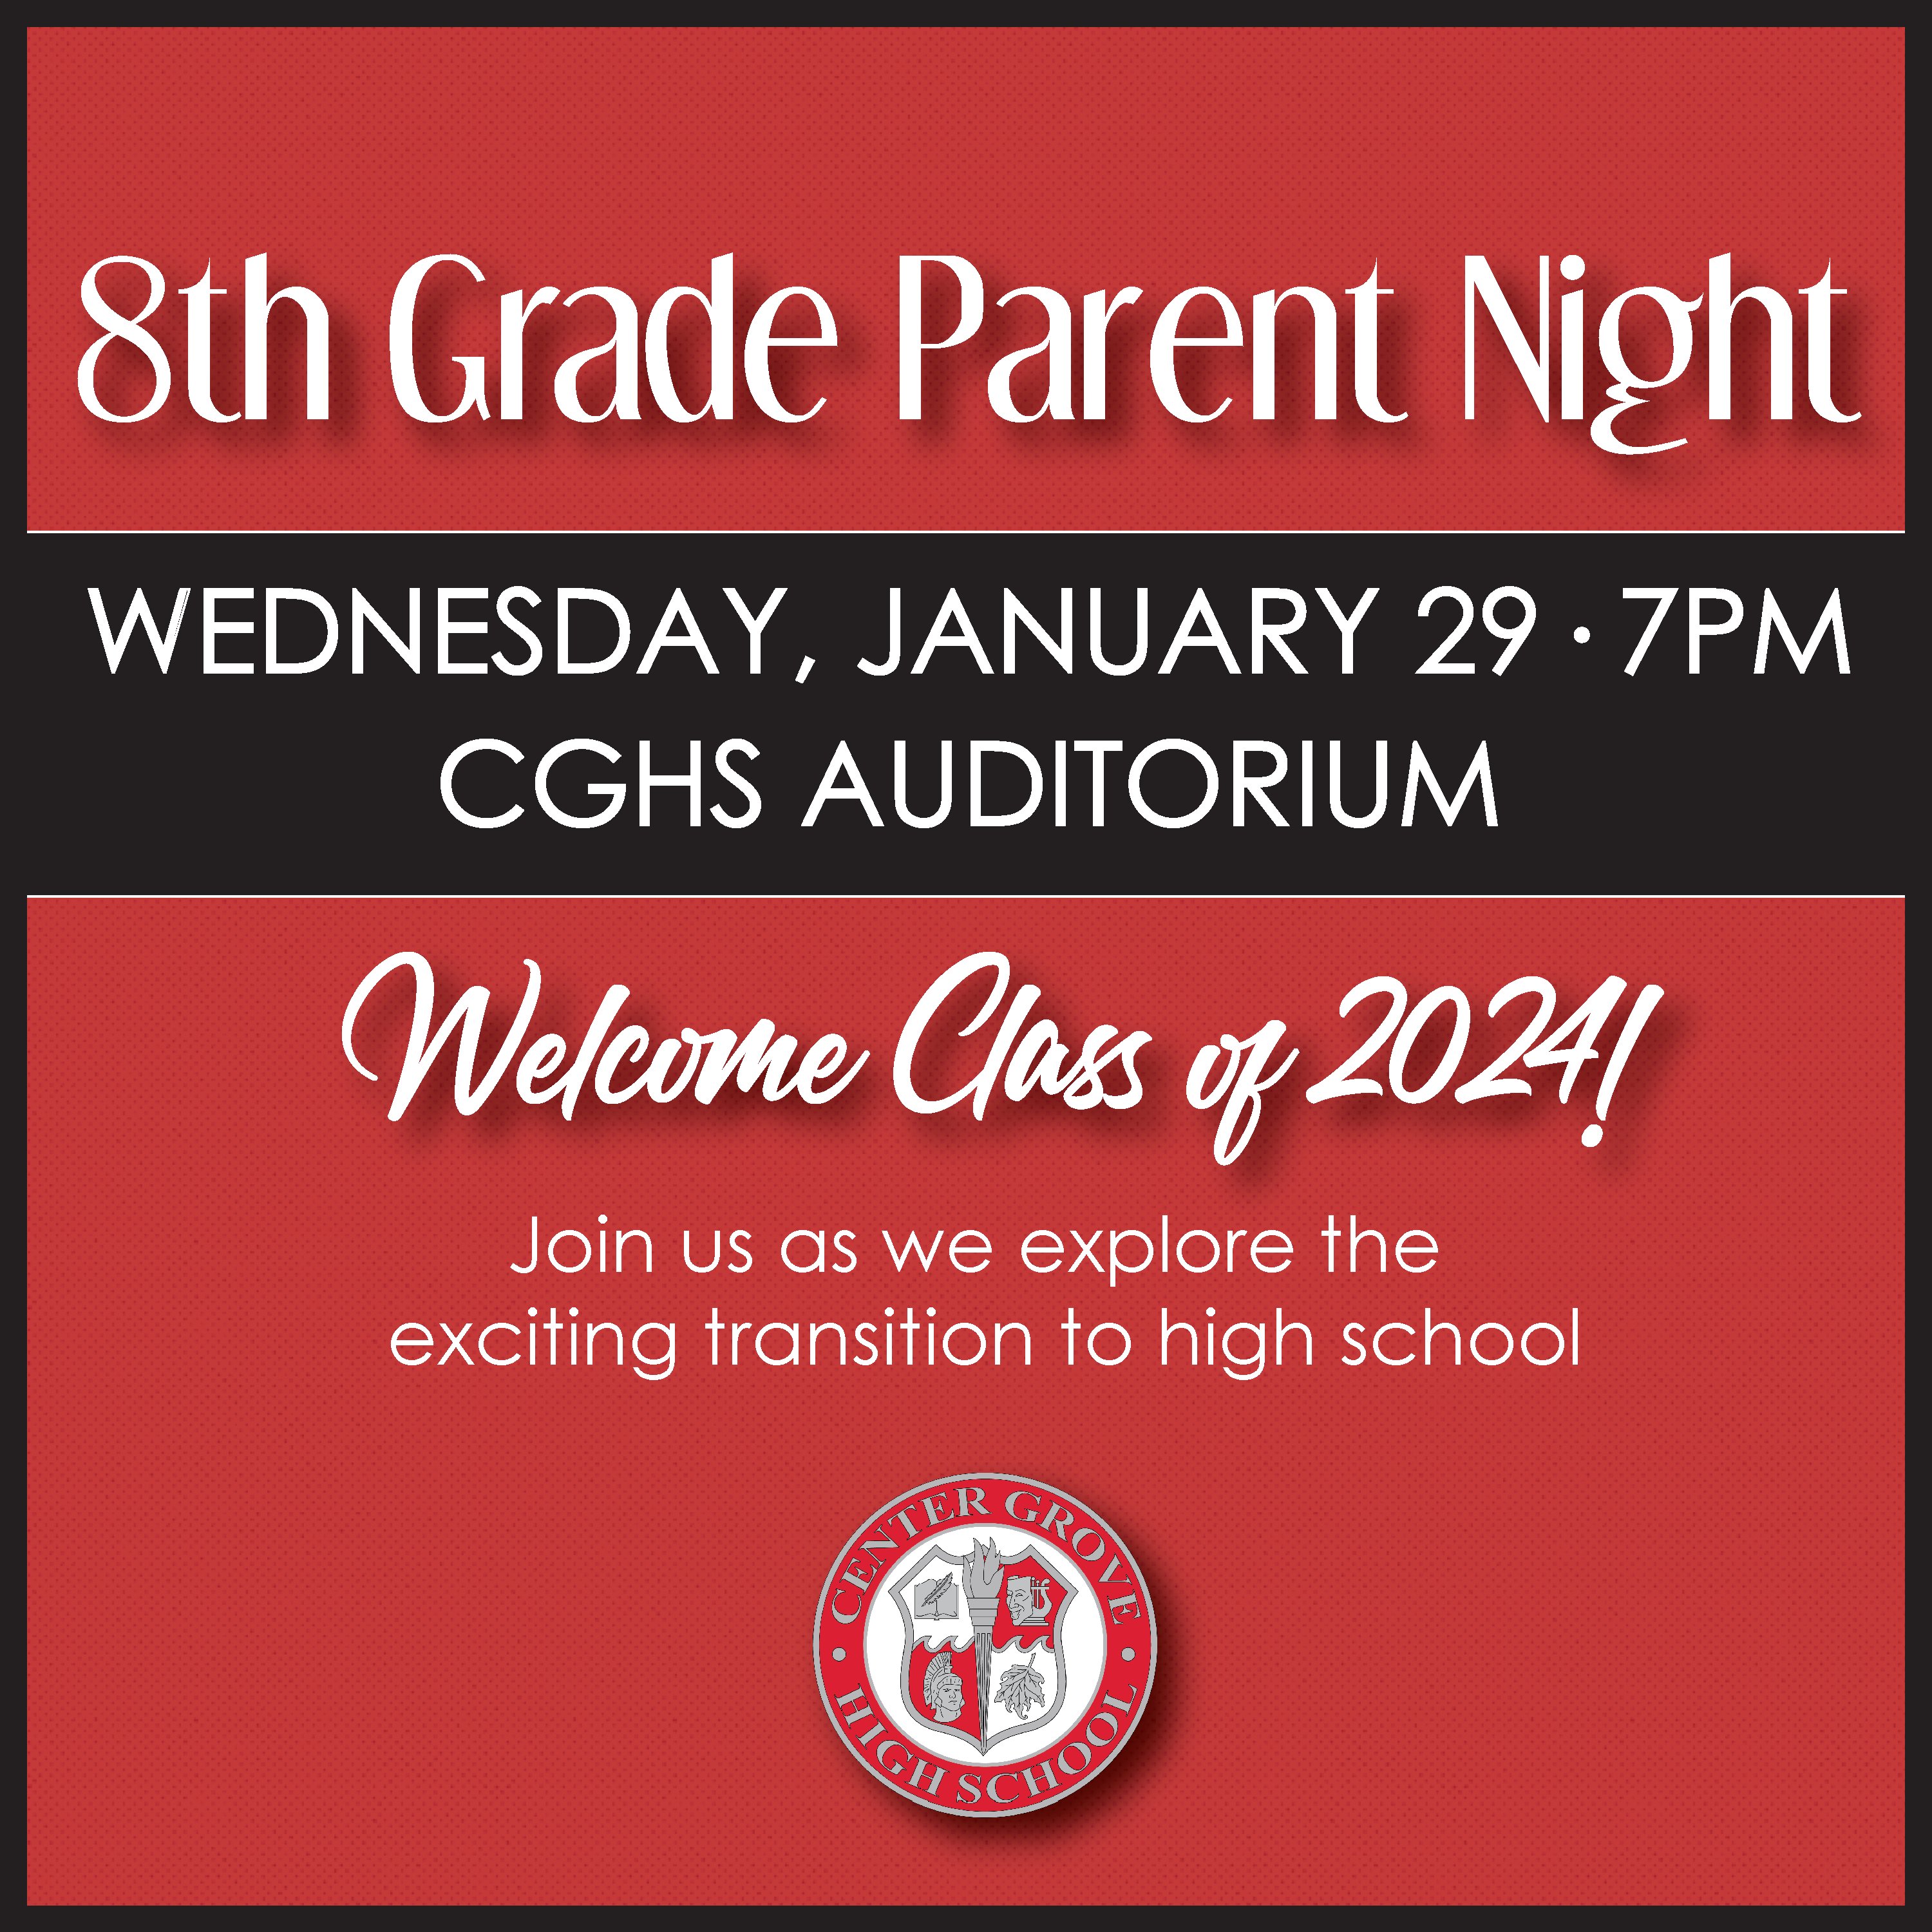 8th Grade Parent Info Night at CGHS